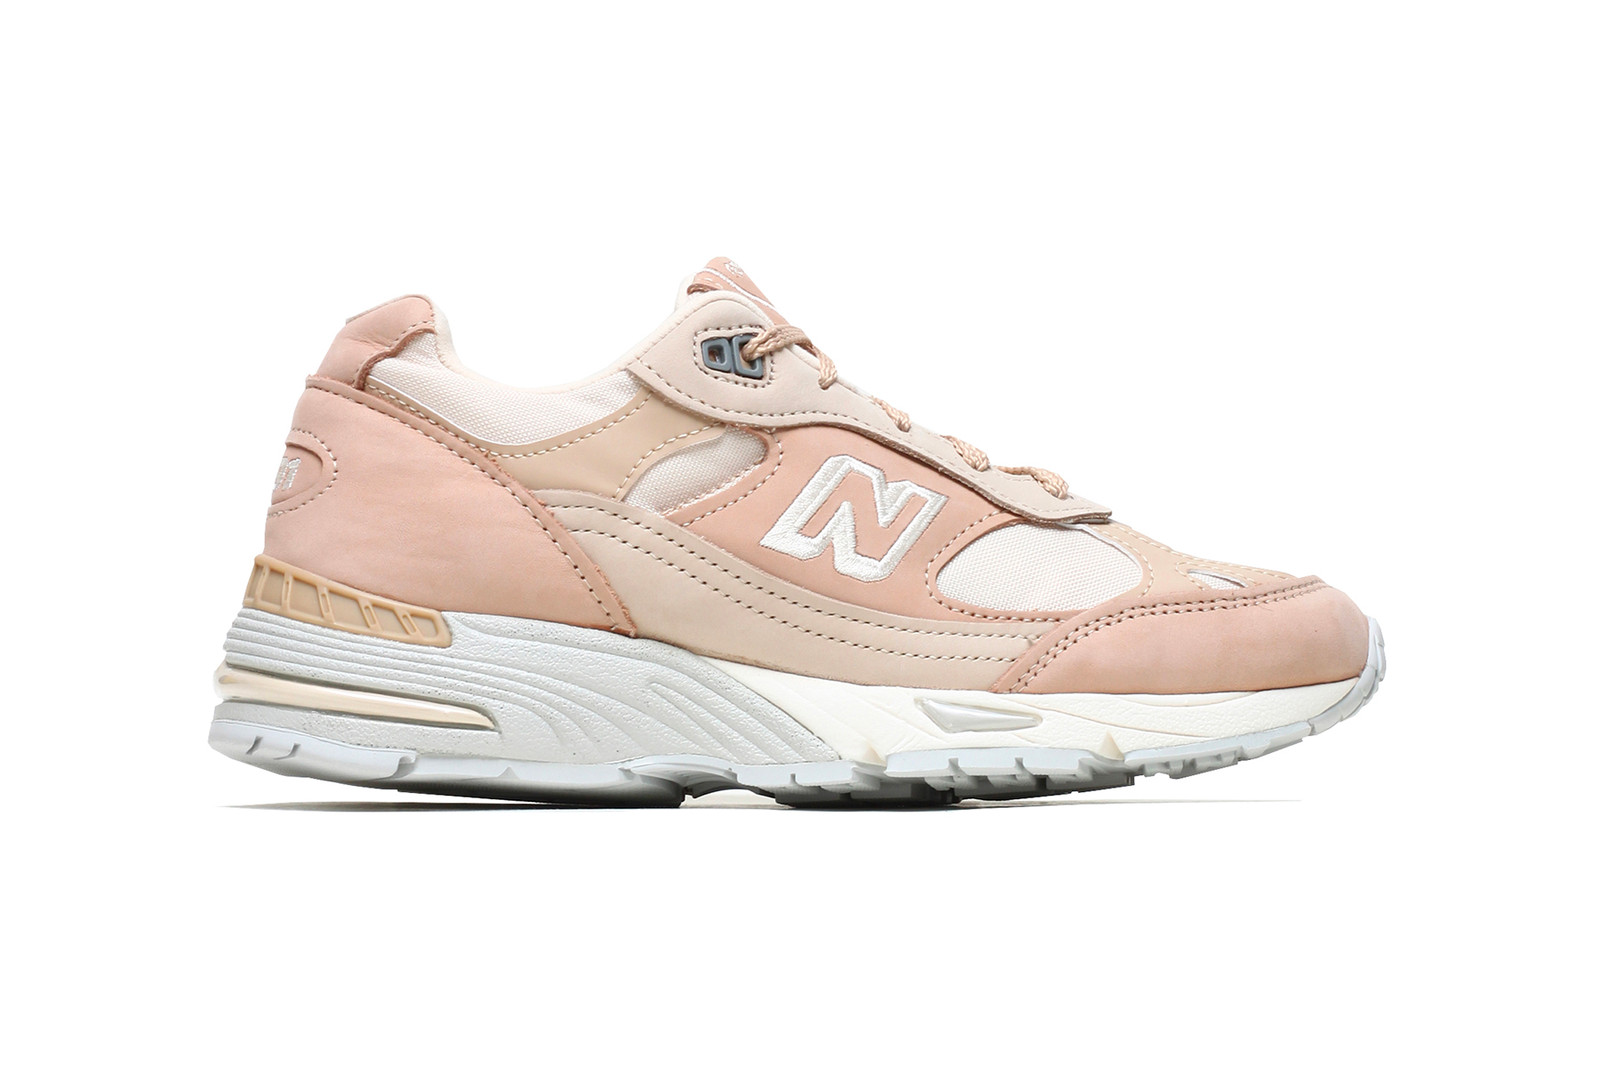 Best Underrated Dad Sneaker Women New Balance 991 PUMA Prevail OG Nike Axel Arigato Air Monarch IV Tech Runner Reebok DMX Run 10 Shoe Price Release Where to Buy Chunky Sole